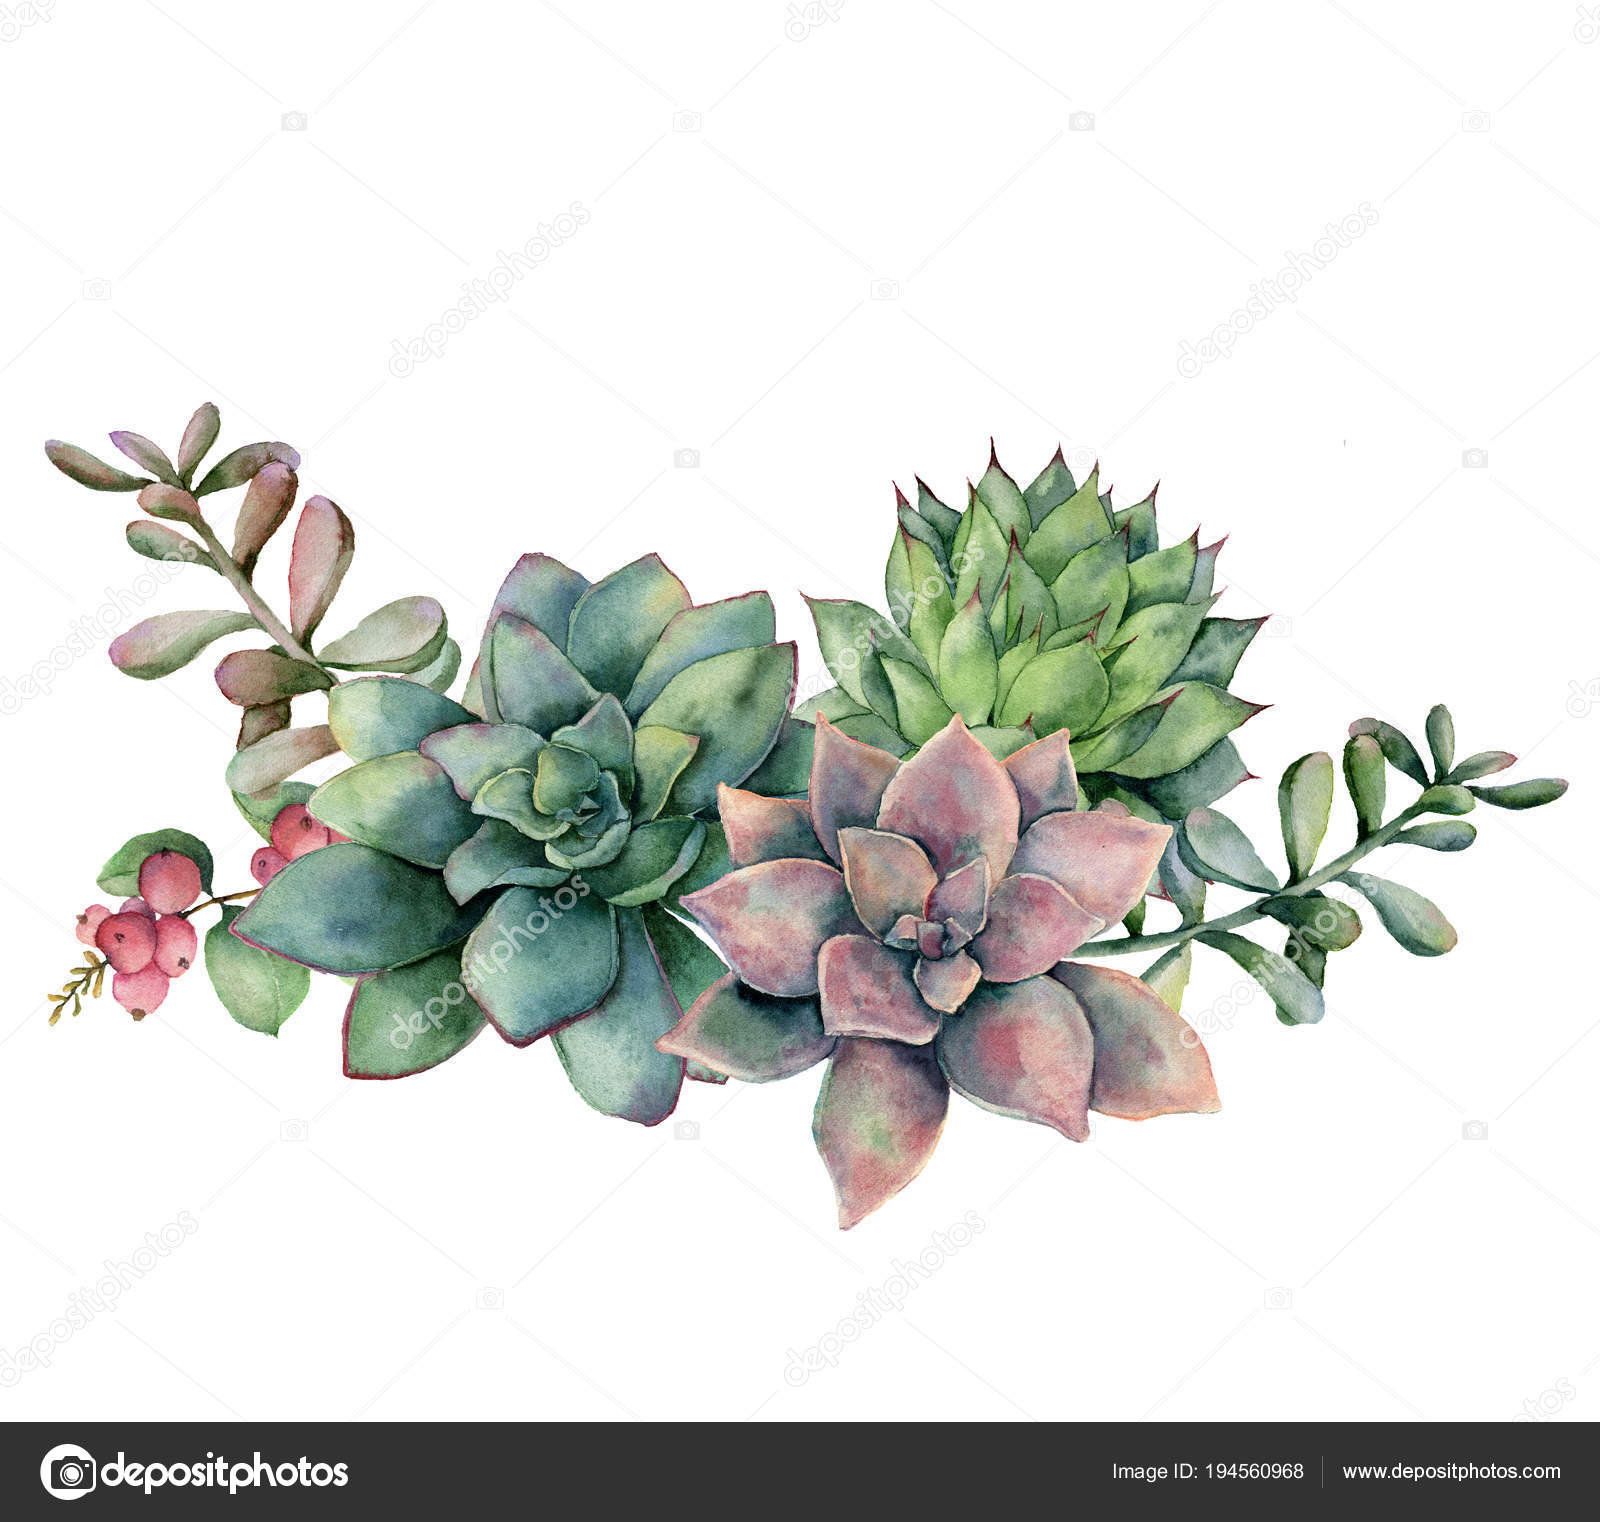 Watercolor Succulent Bouquet With Berries Hand Painted Green And Violet Flowers Branch And Red Berries Isolated On White Background Floral Illustration For Design Fabric Print Or Background Stock Photo Image By C